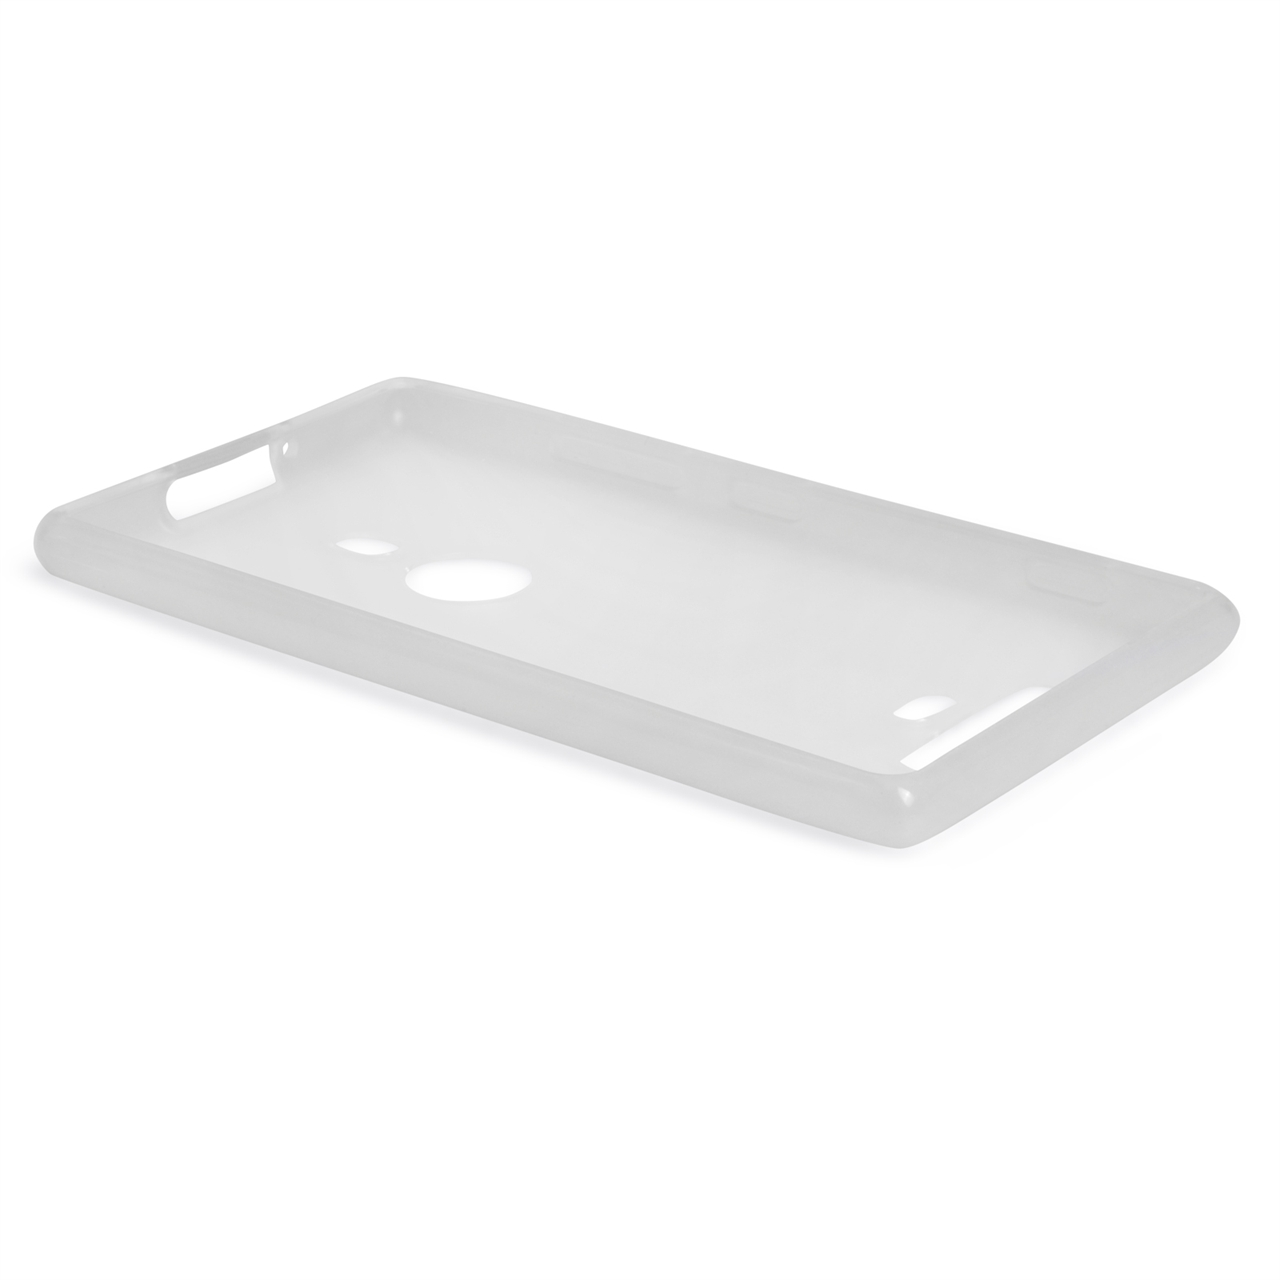 YouSave Accessories Nokia Lumia 925 Gel Case - Clear